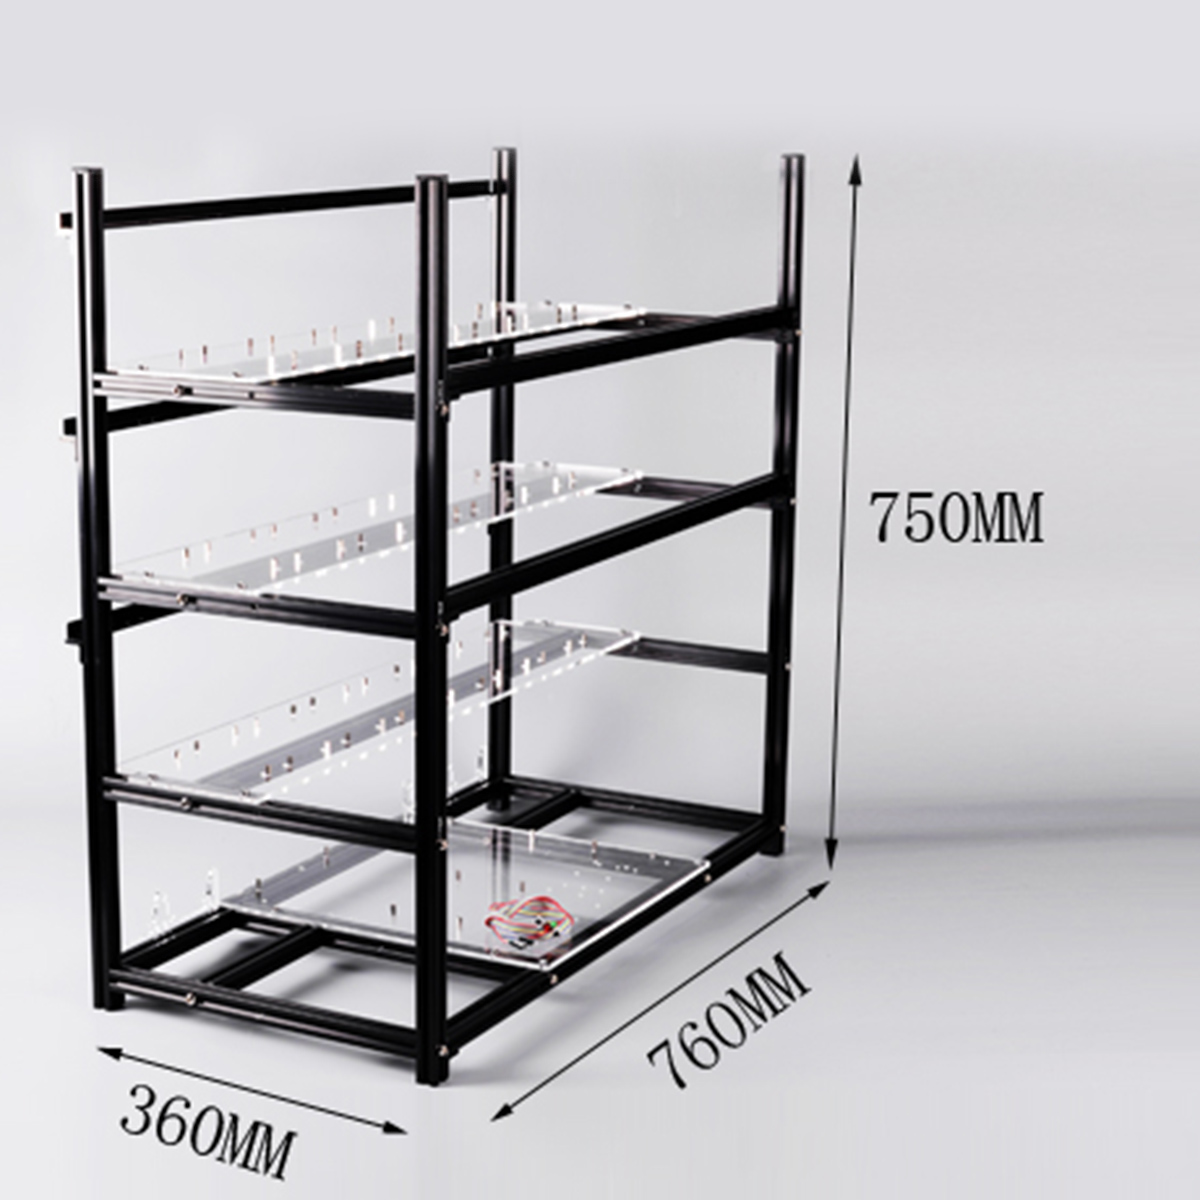 Aluminum Bitcoin Open Air Mining Rig Frame Stackable Case For 19GPU Open Pit Mining Rig With 18Fans